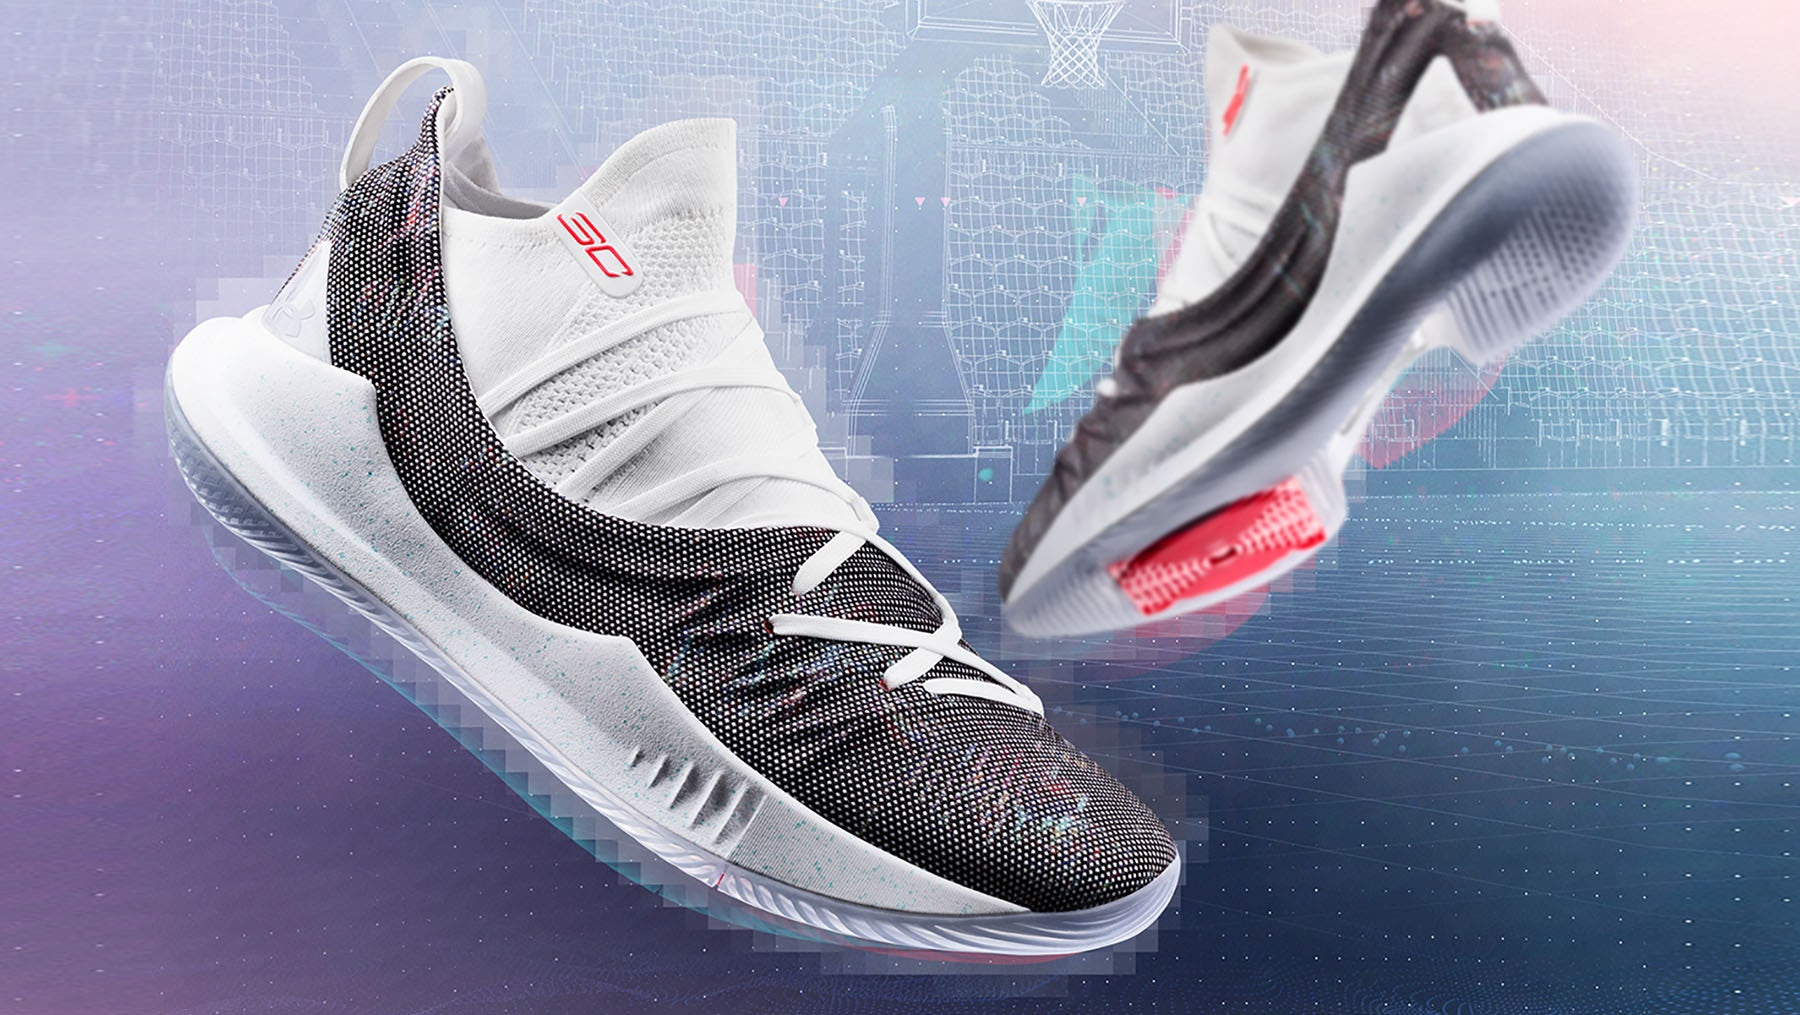 Under Armour's Curry 5 shoe   Source: Courtesy